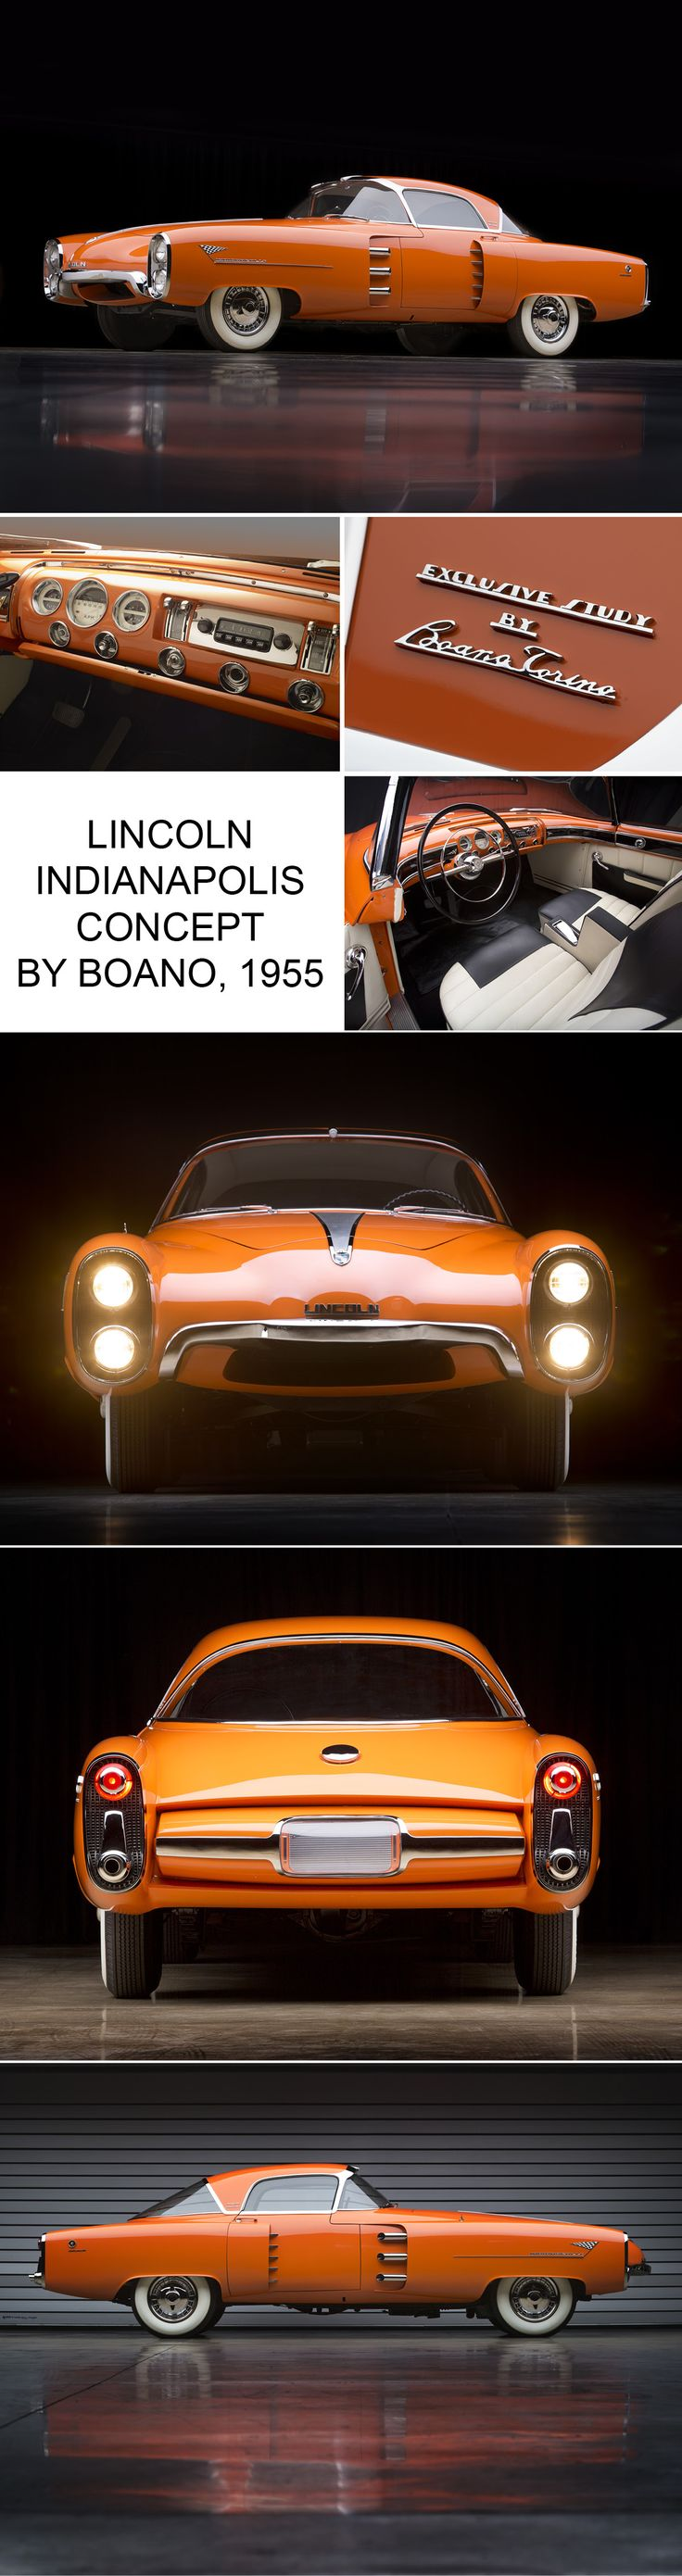 1956 chrysler boano auto shows car and driver - Lincoln Indianapolis Concept By Boano